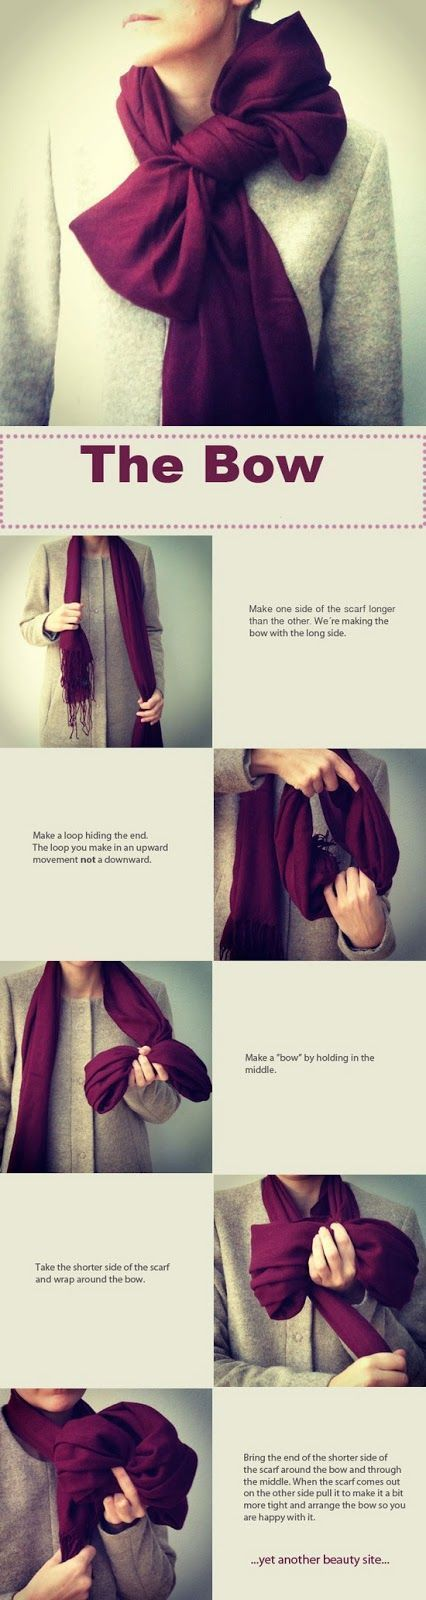 Scarves are so more than just a warm covering -- these styling tips can help add some oomph to your cozy Fall wear!  http://www.gurl.com/2014/03/15/style-tips-on-how-to-wear-and-tie-a-scarf-for-any-season/